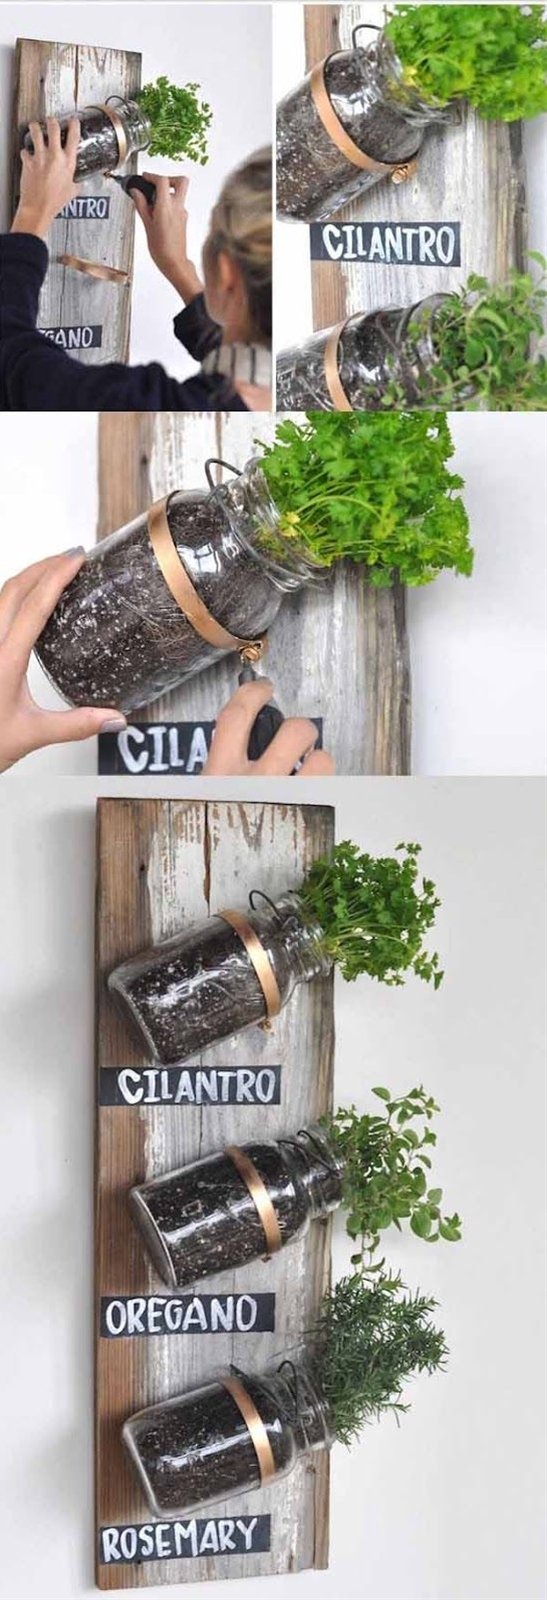 Attractive & clever way to plant fresh herbs without them taking over your entire yard!